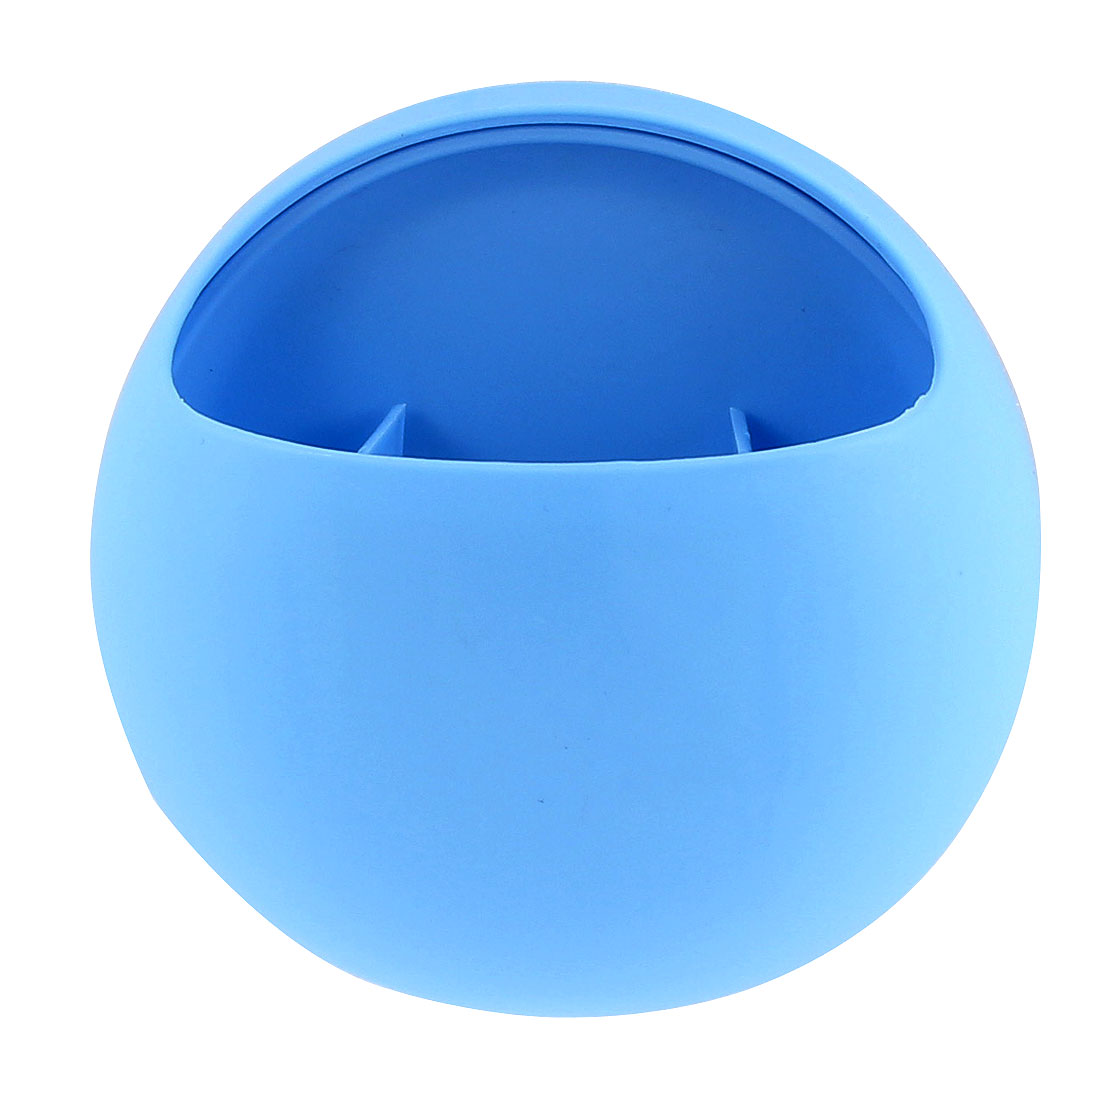 Home Bathroom Wall Suction Cups Toothbrush Holder Organizer Blue